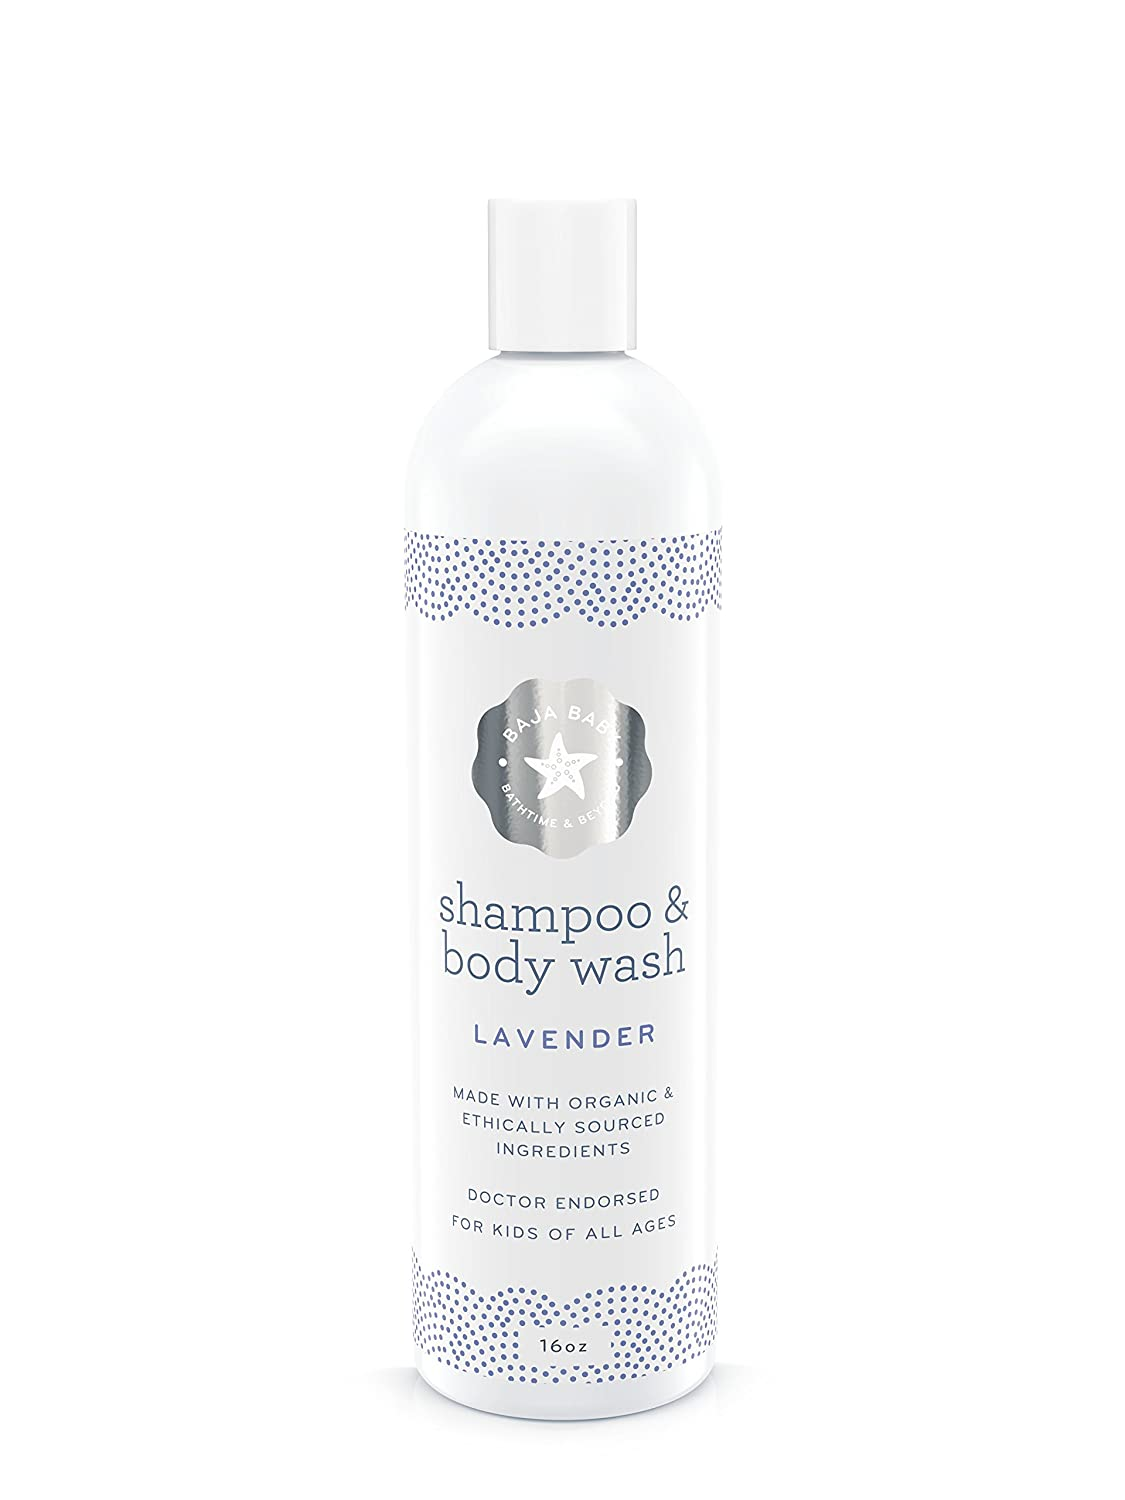 Baja Baby Lavender Shampoo and Body Wash - EWG VERIFIED - Family Size - 16 fl oz - Free of Sulphates, Parabens and Phosphates - Dr Approved - 100%! PrimePotions 1266